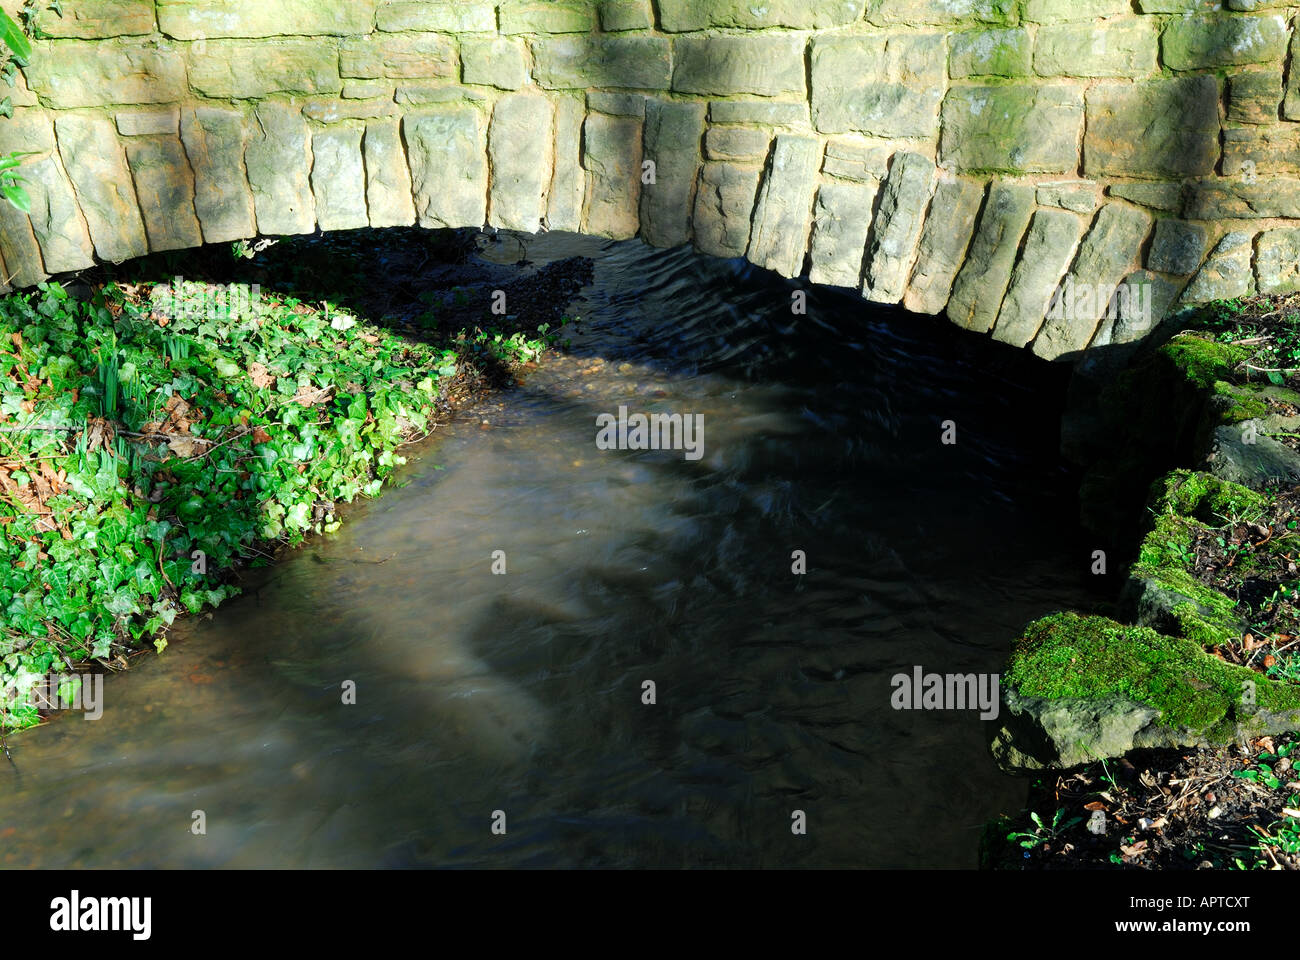 Water under the bridge. - Stock Image